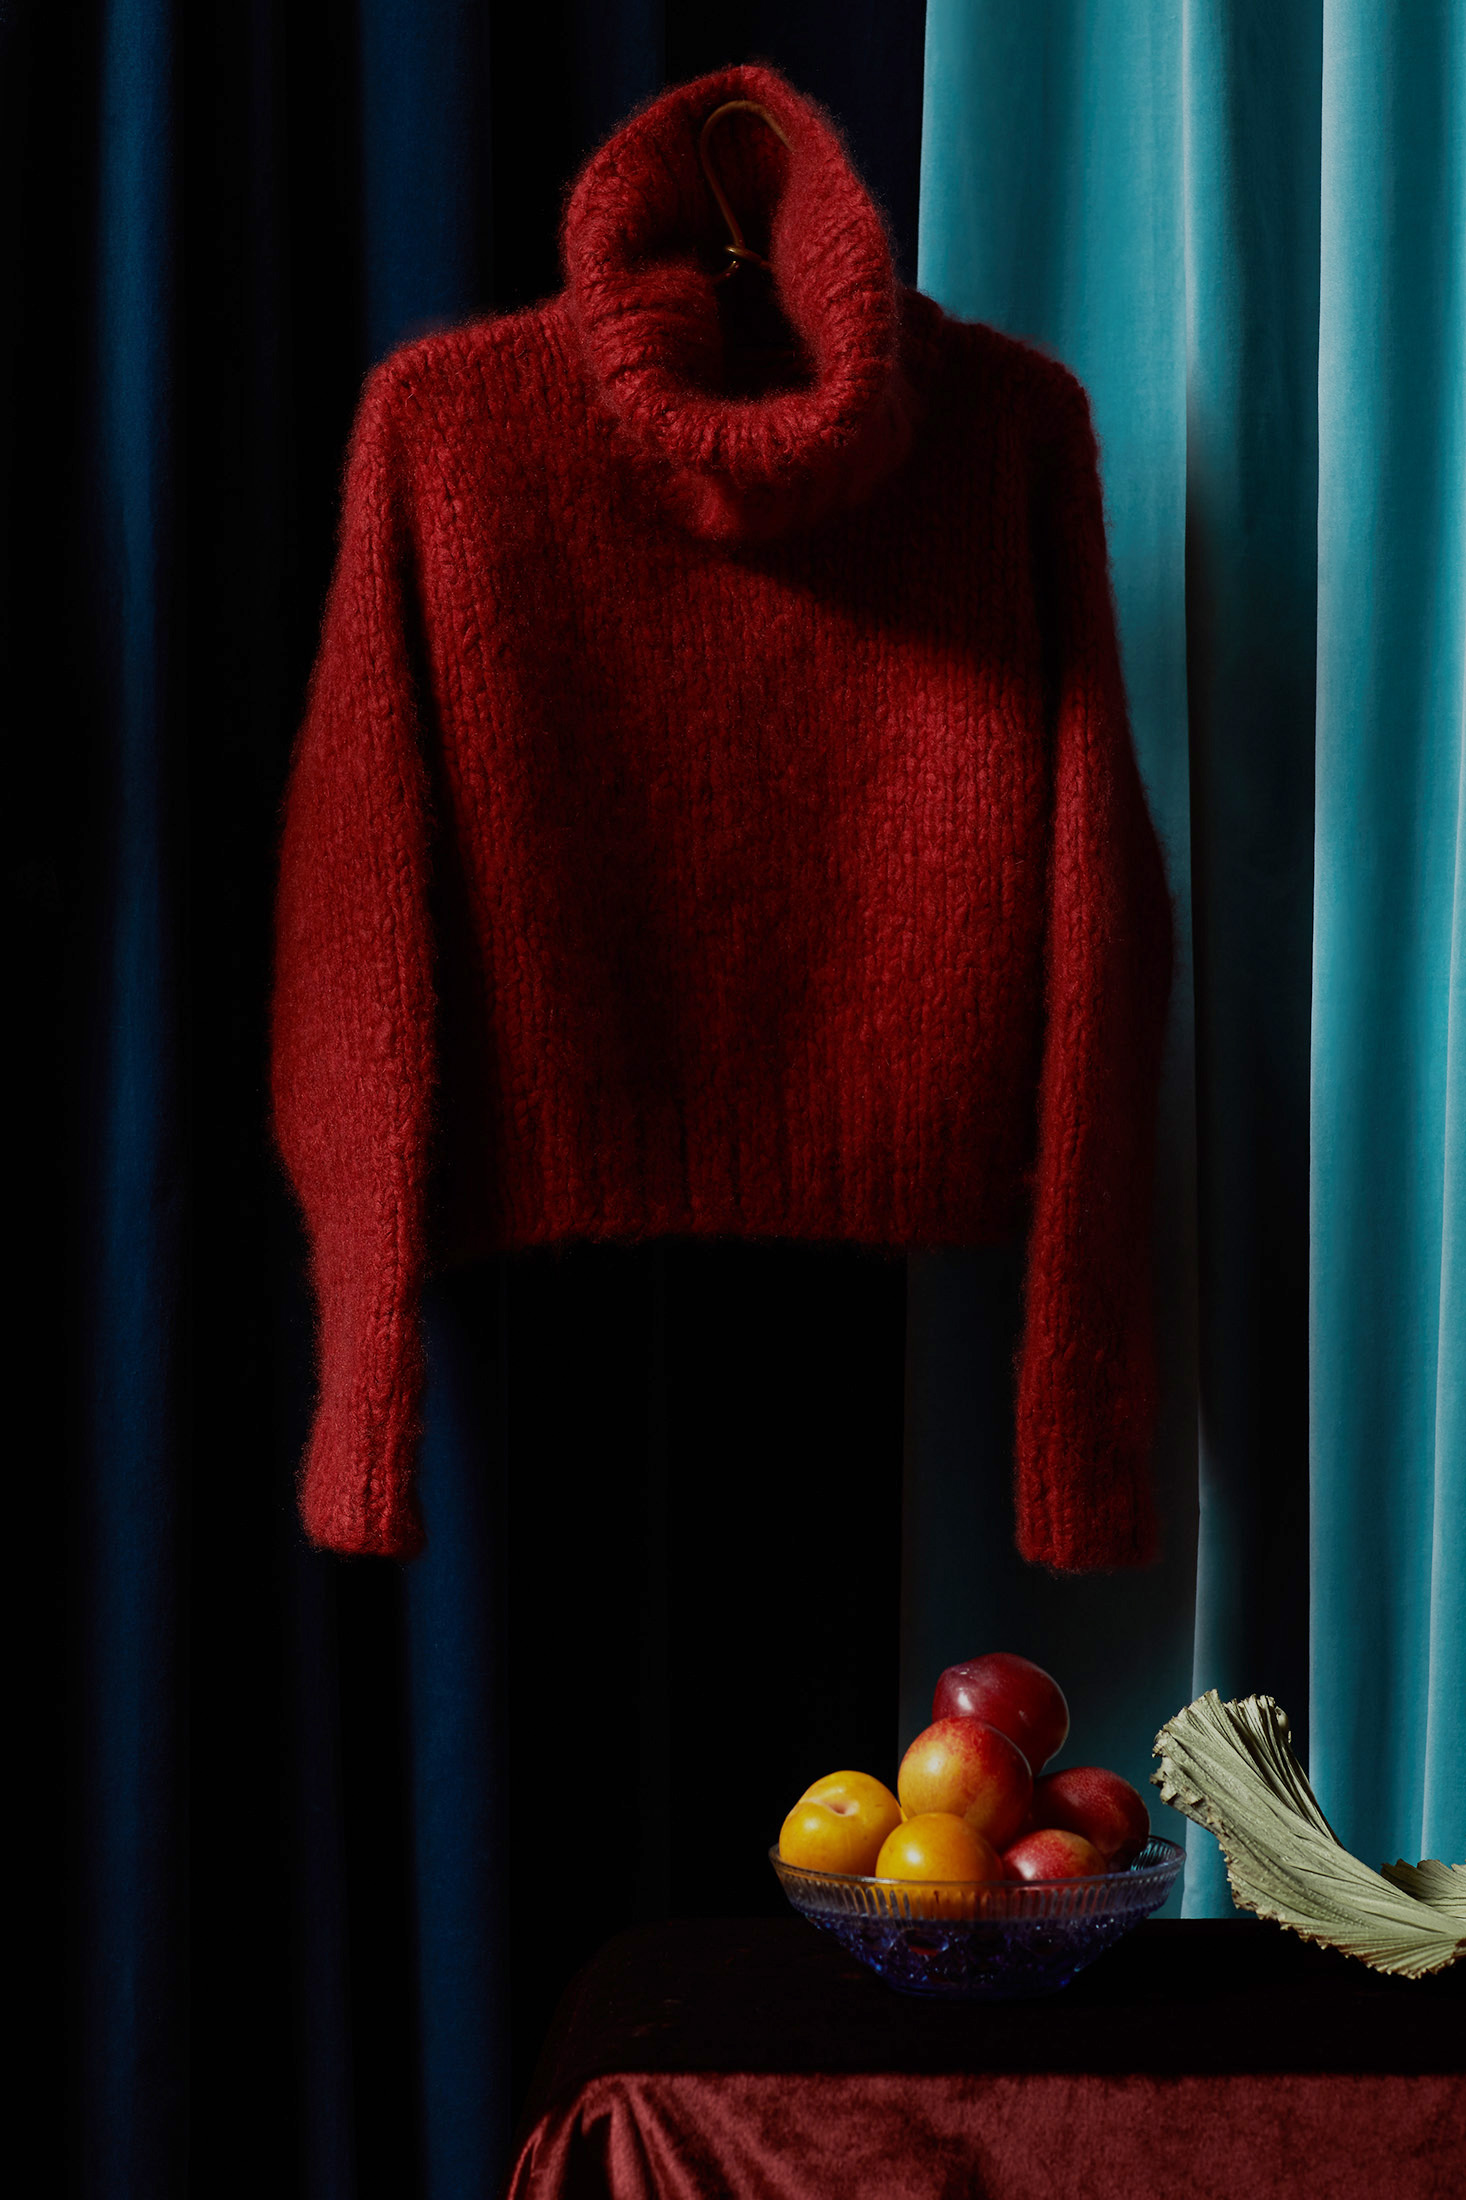 01_IAS_Red_Sweater_StillLife_033.jpg